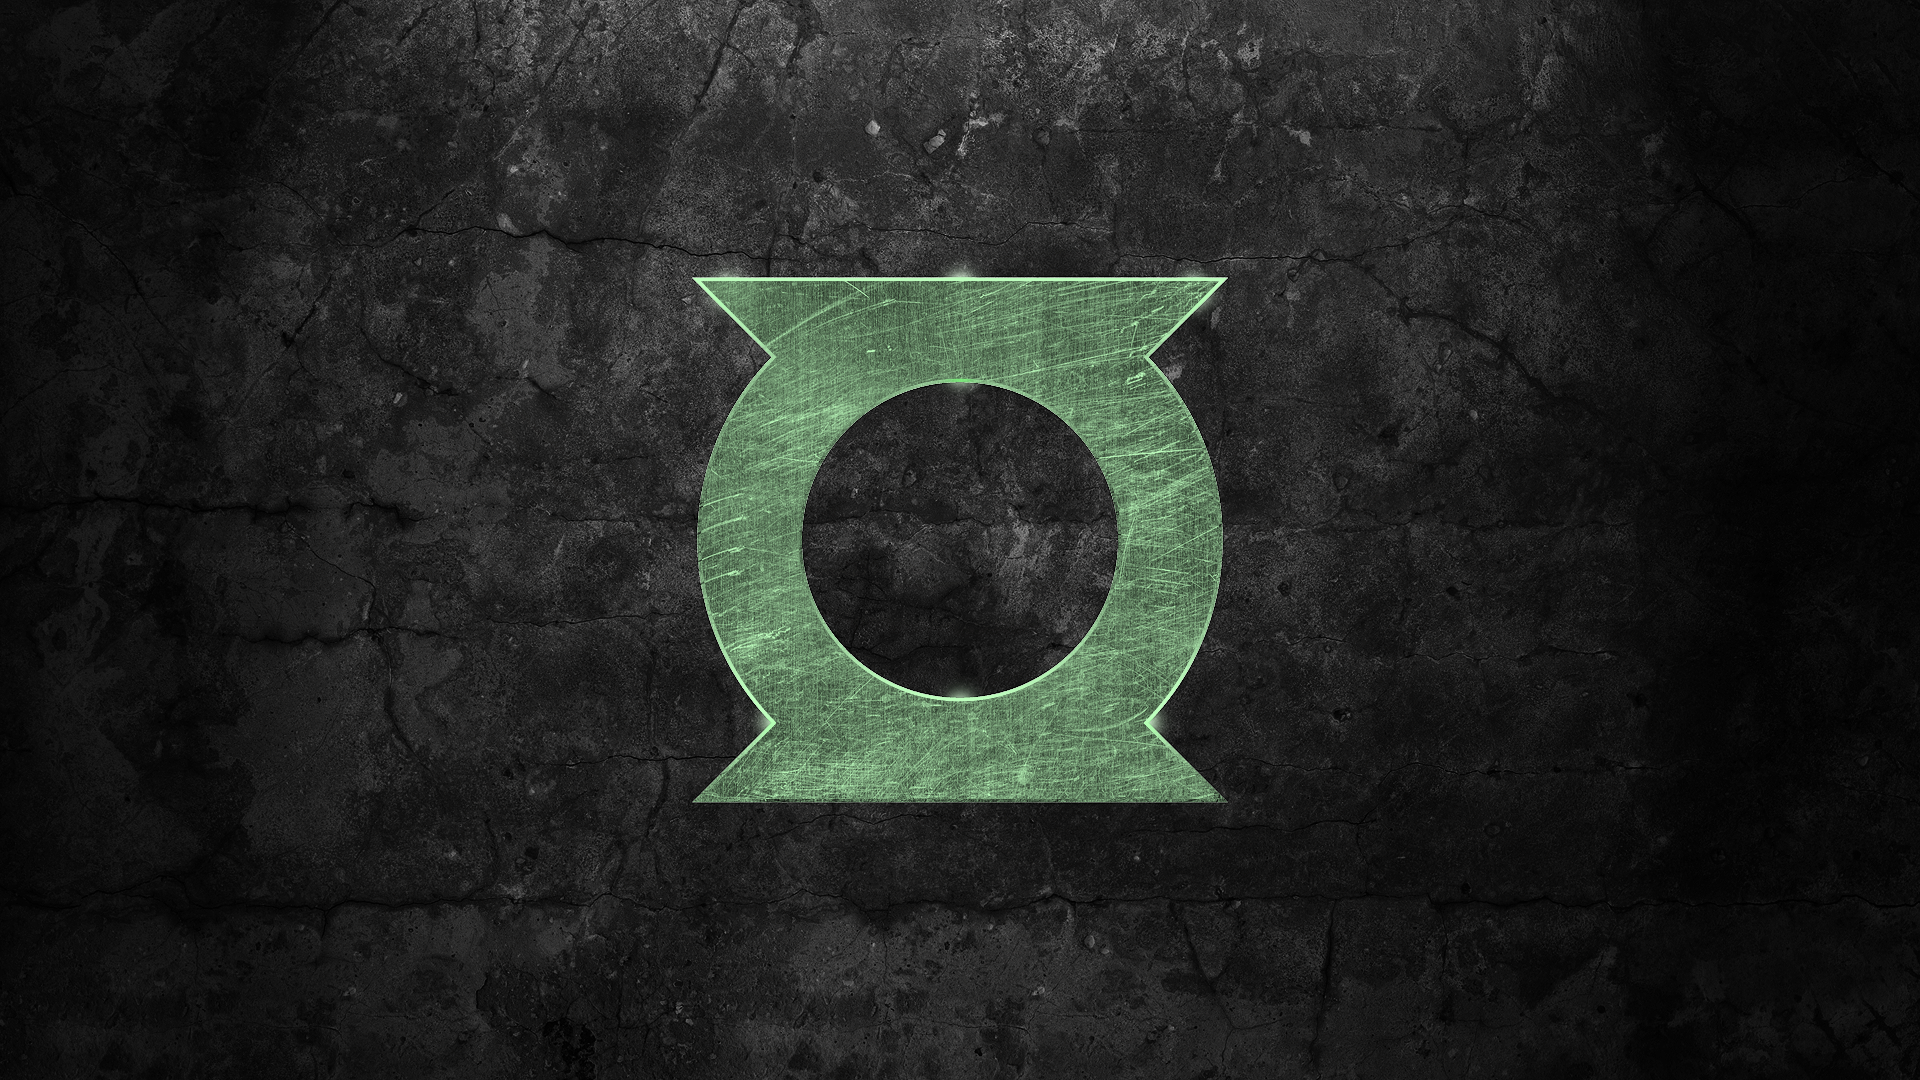 Green Lantern | HD Quality Images